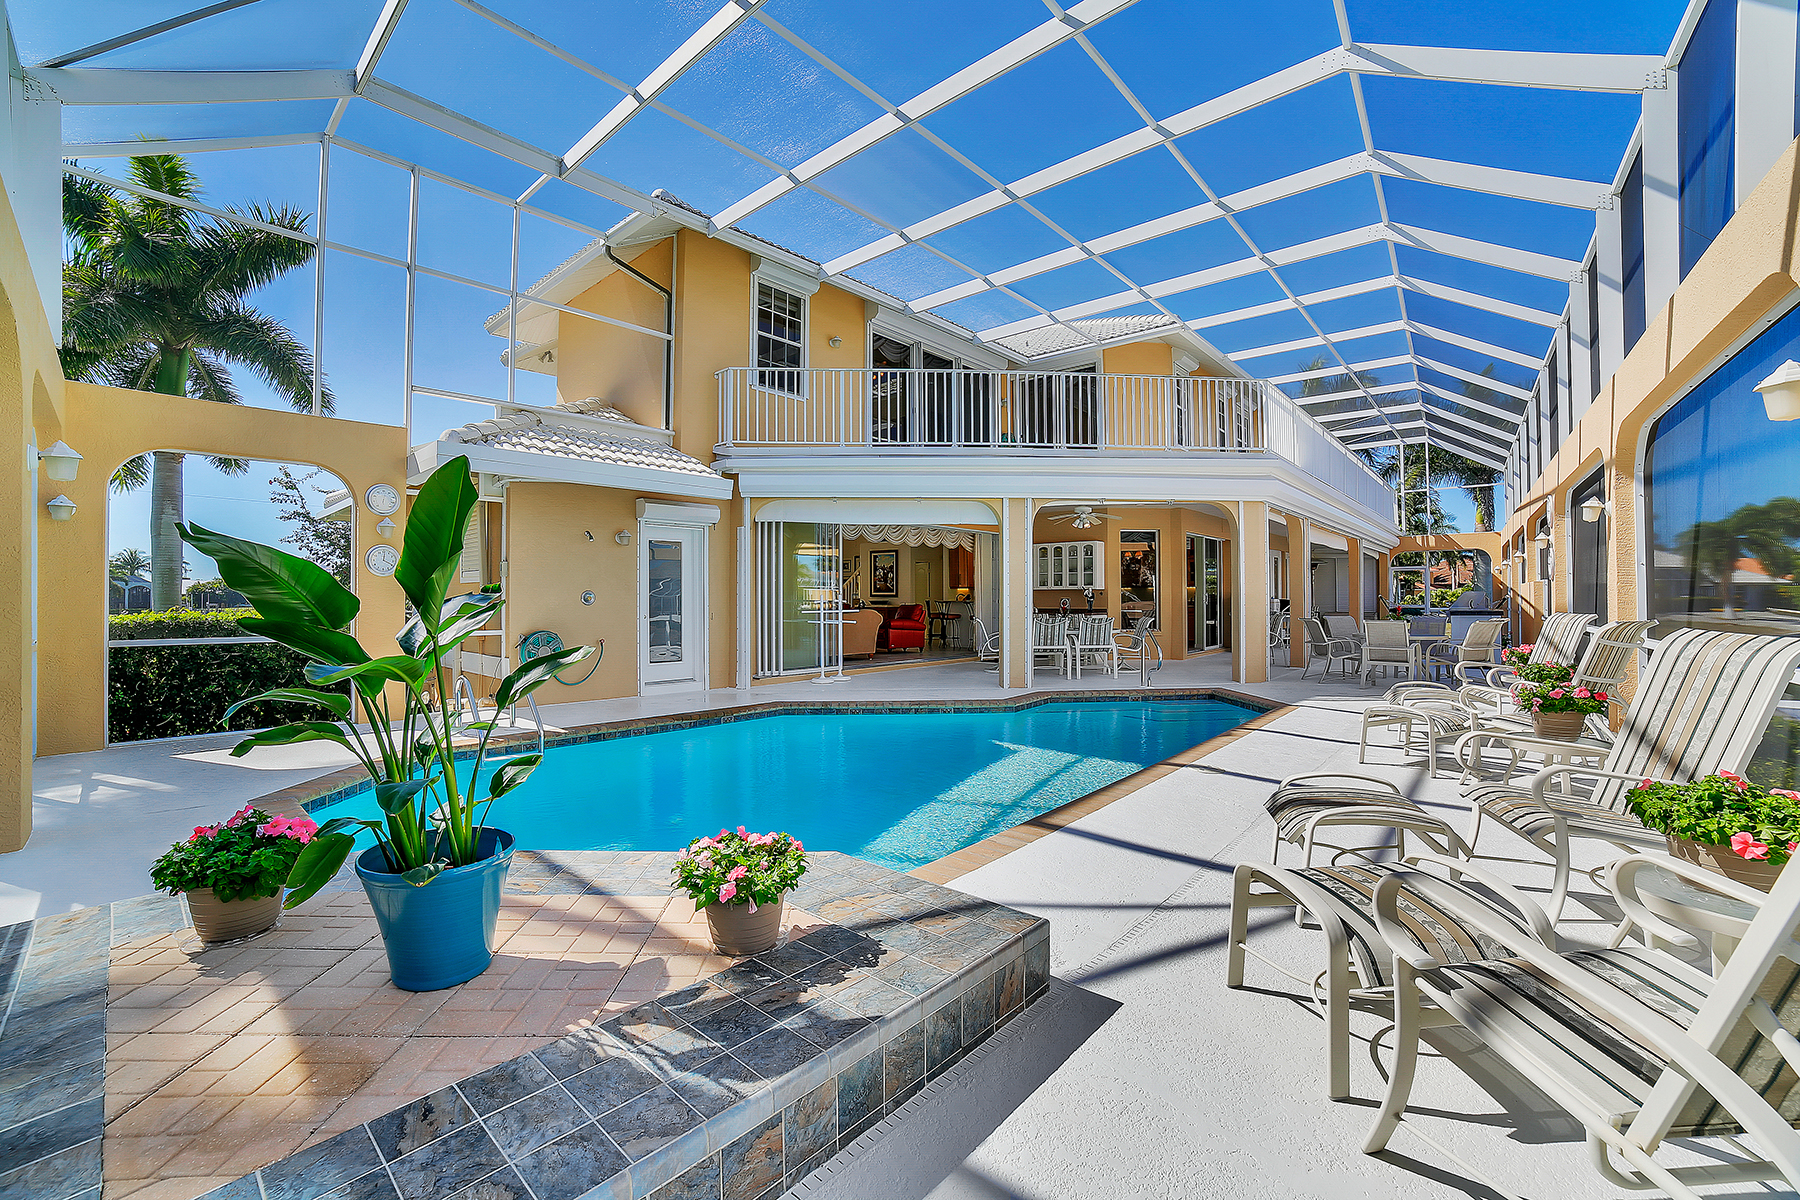 Single Family Home for Sale at MARCO ISLAND 227 Edgewater Ct Marco Island, Florida, 34145 United States